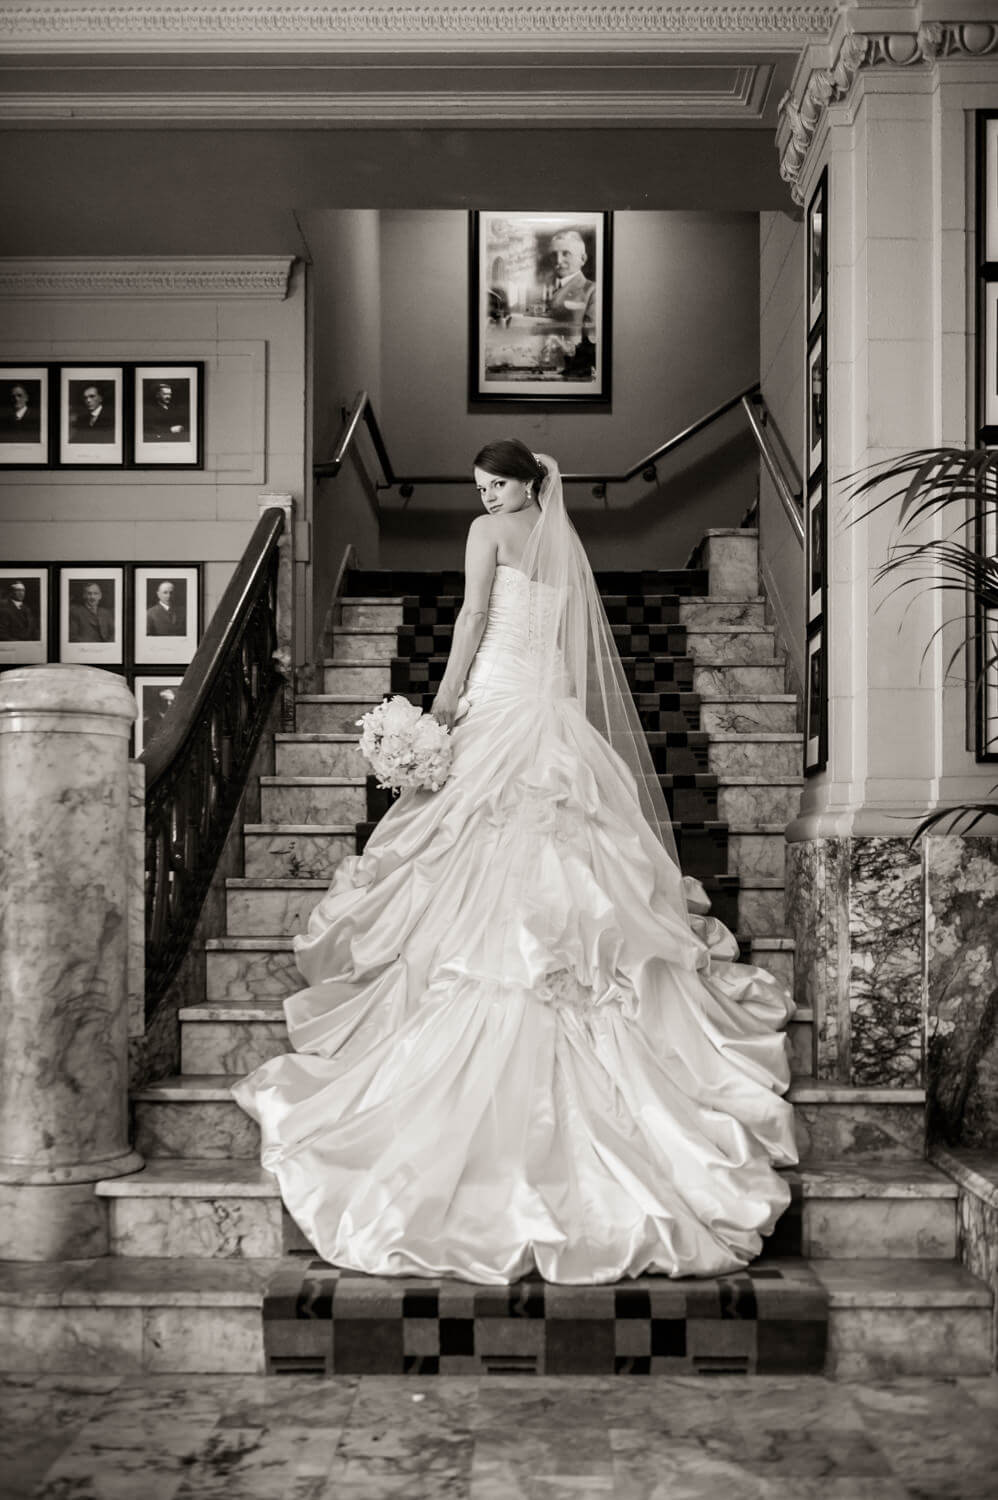 arctic-club-bride-long-dress-stairs.jpg